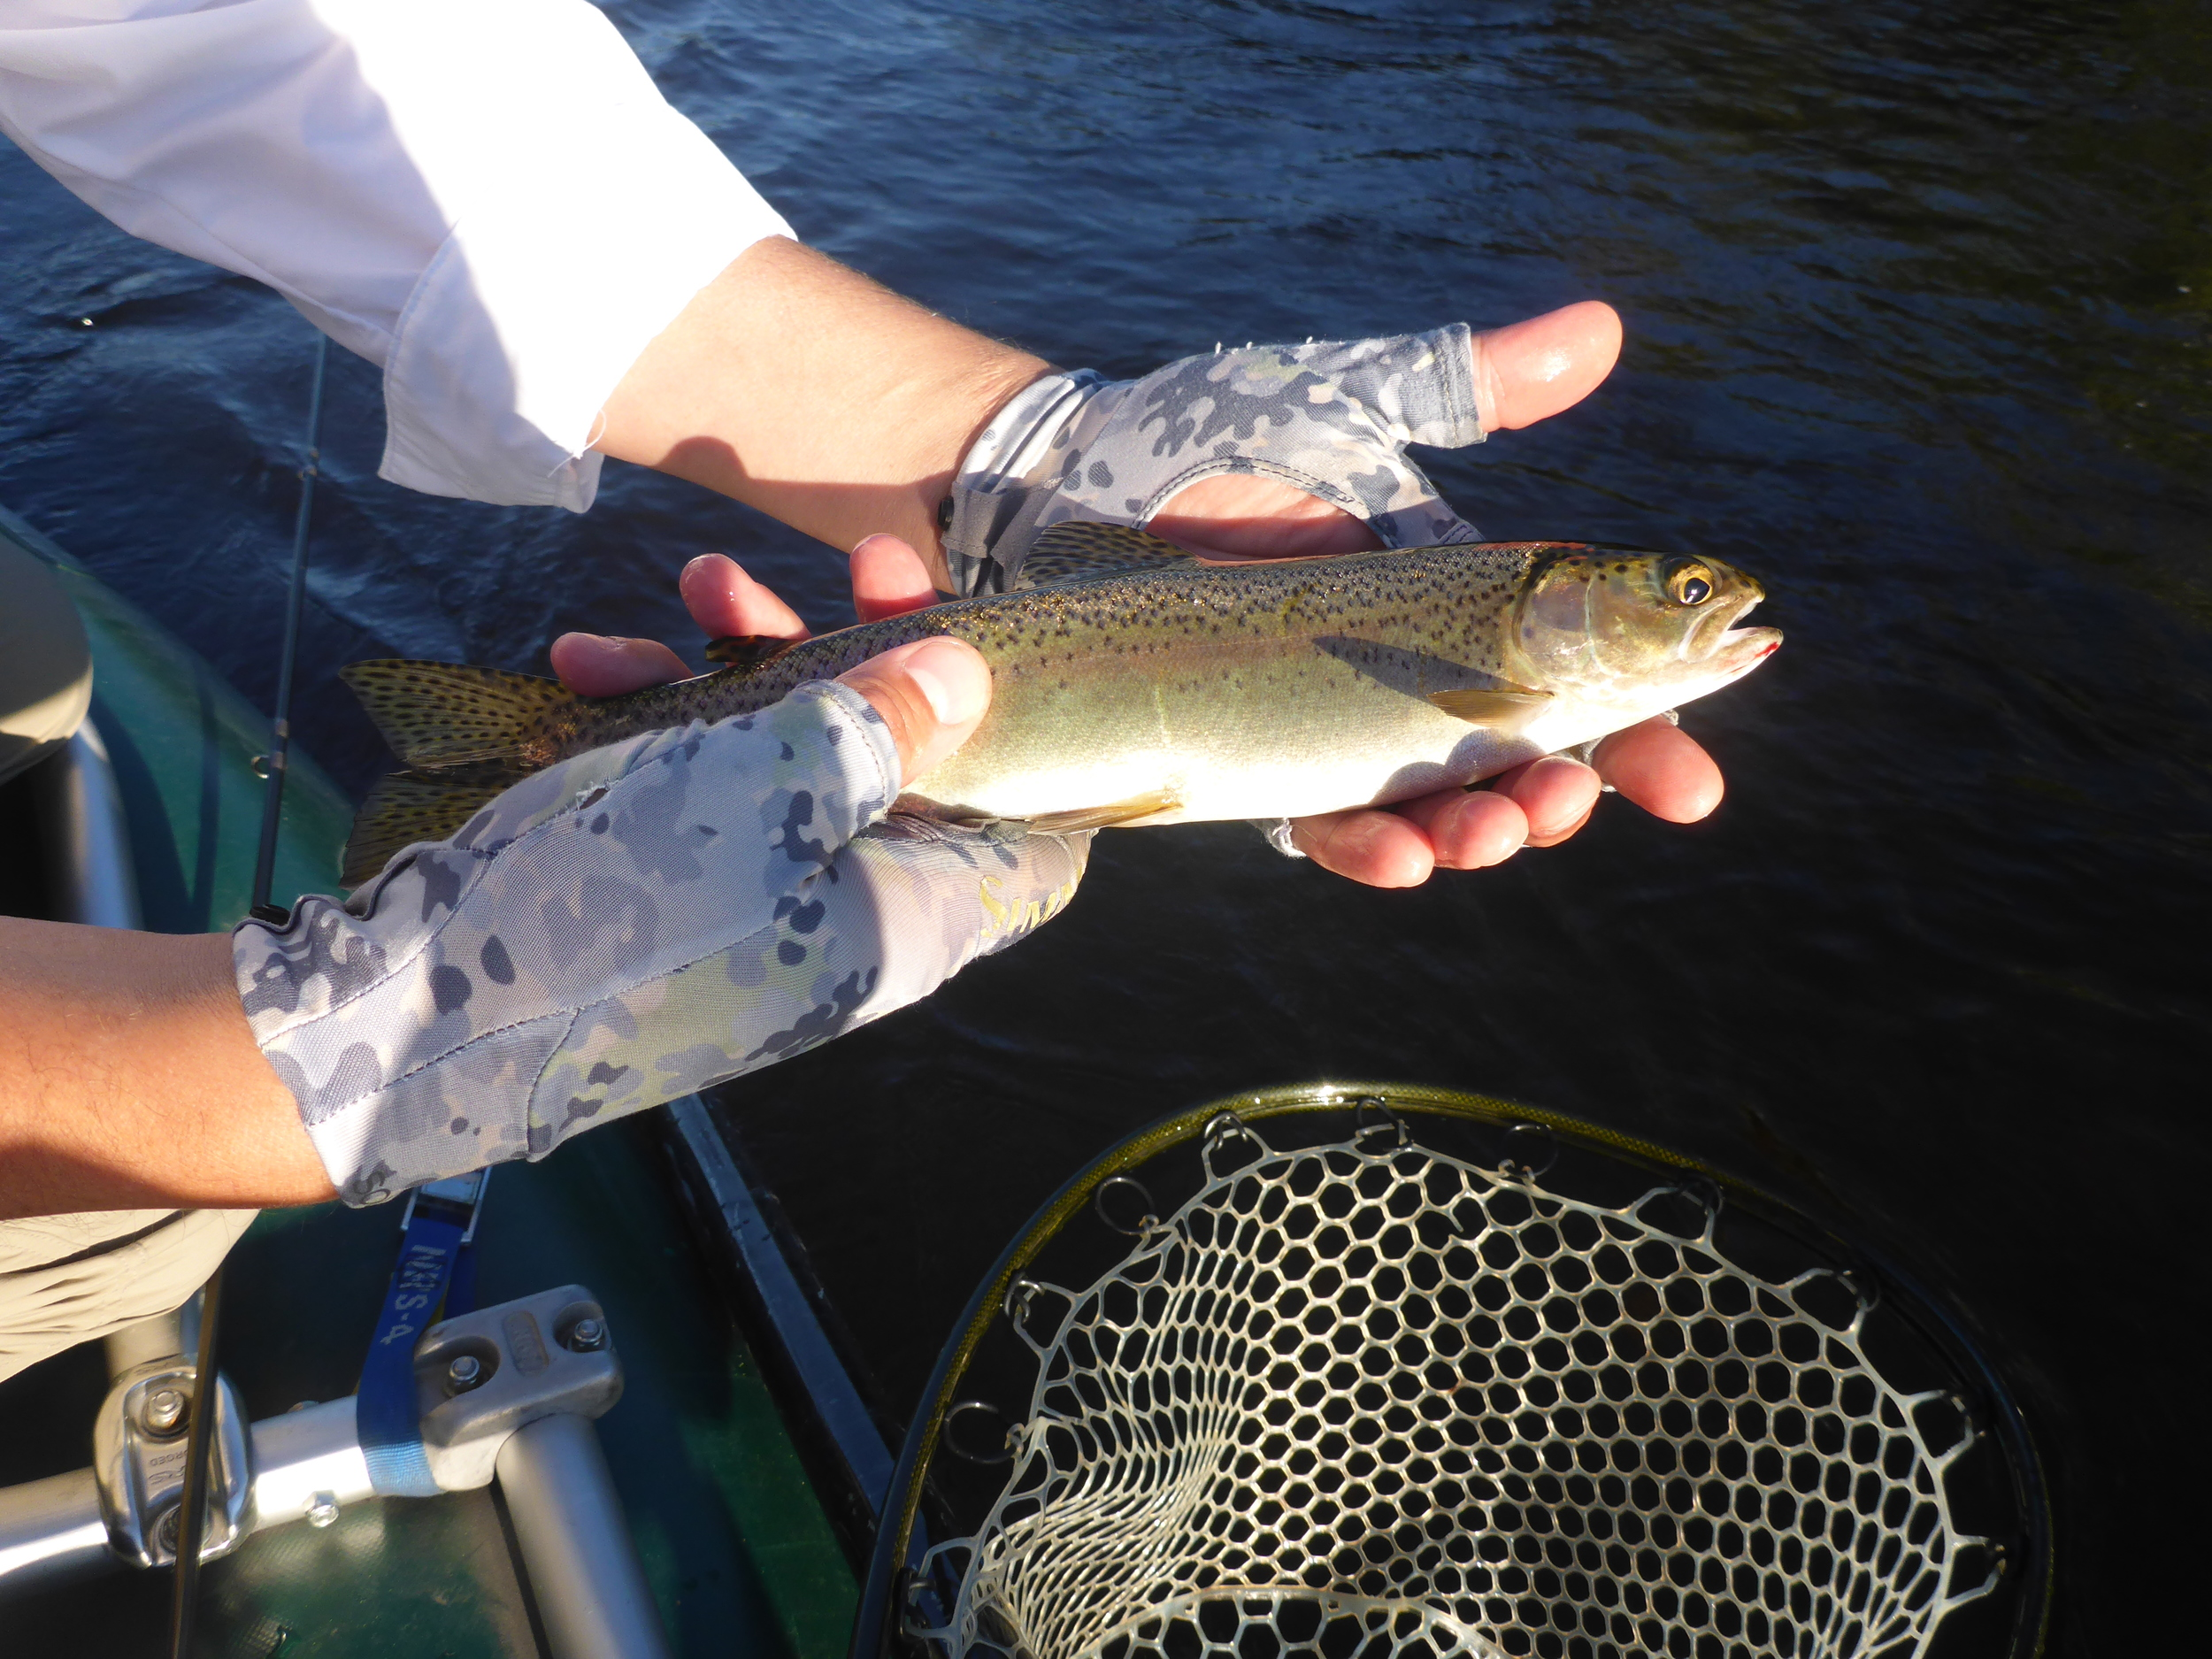 Wild rainbow caught on an iso emerger 8/28. This fish took line on the hookset but we managed to land him. The next fish was much bigger and broke off when she turned directions.